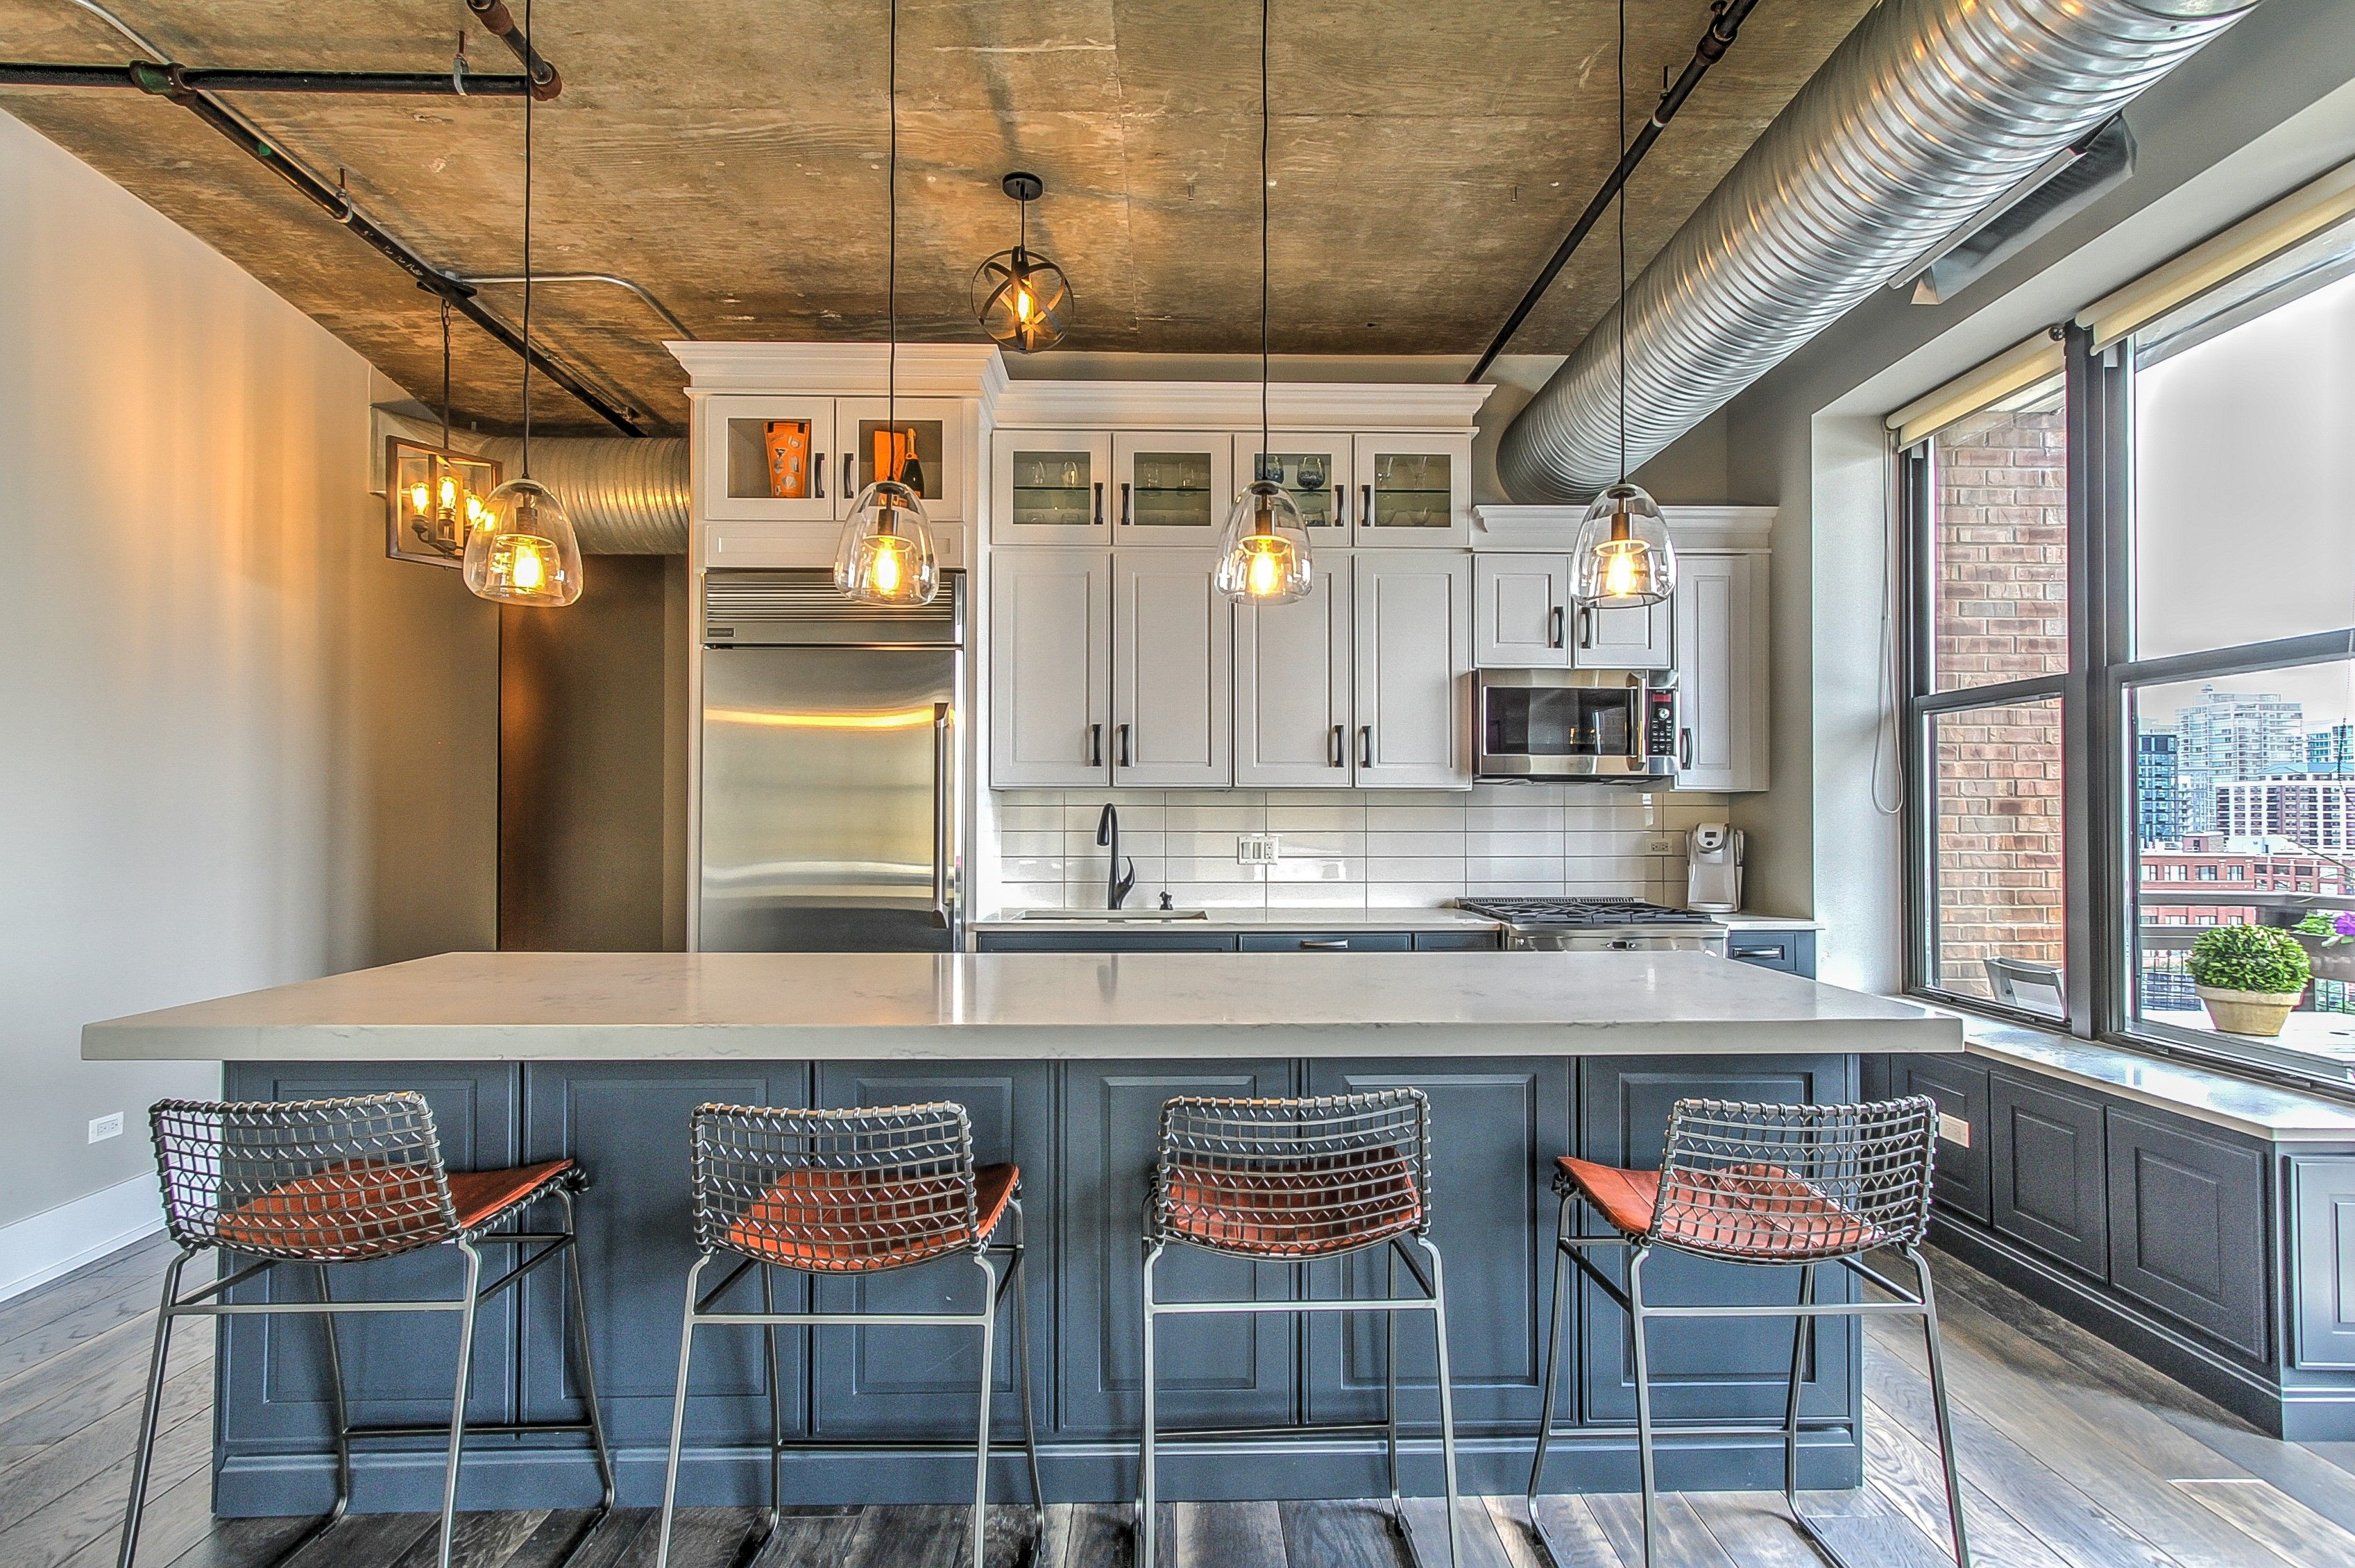 Who Said Industrial Spaces Have To Be Boring These White And Blue Cabinets By Echelon Make This Space Wholesale Kitchen Cabinets Kitchen Design Kitchen Trends